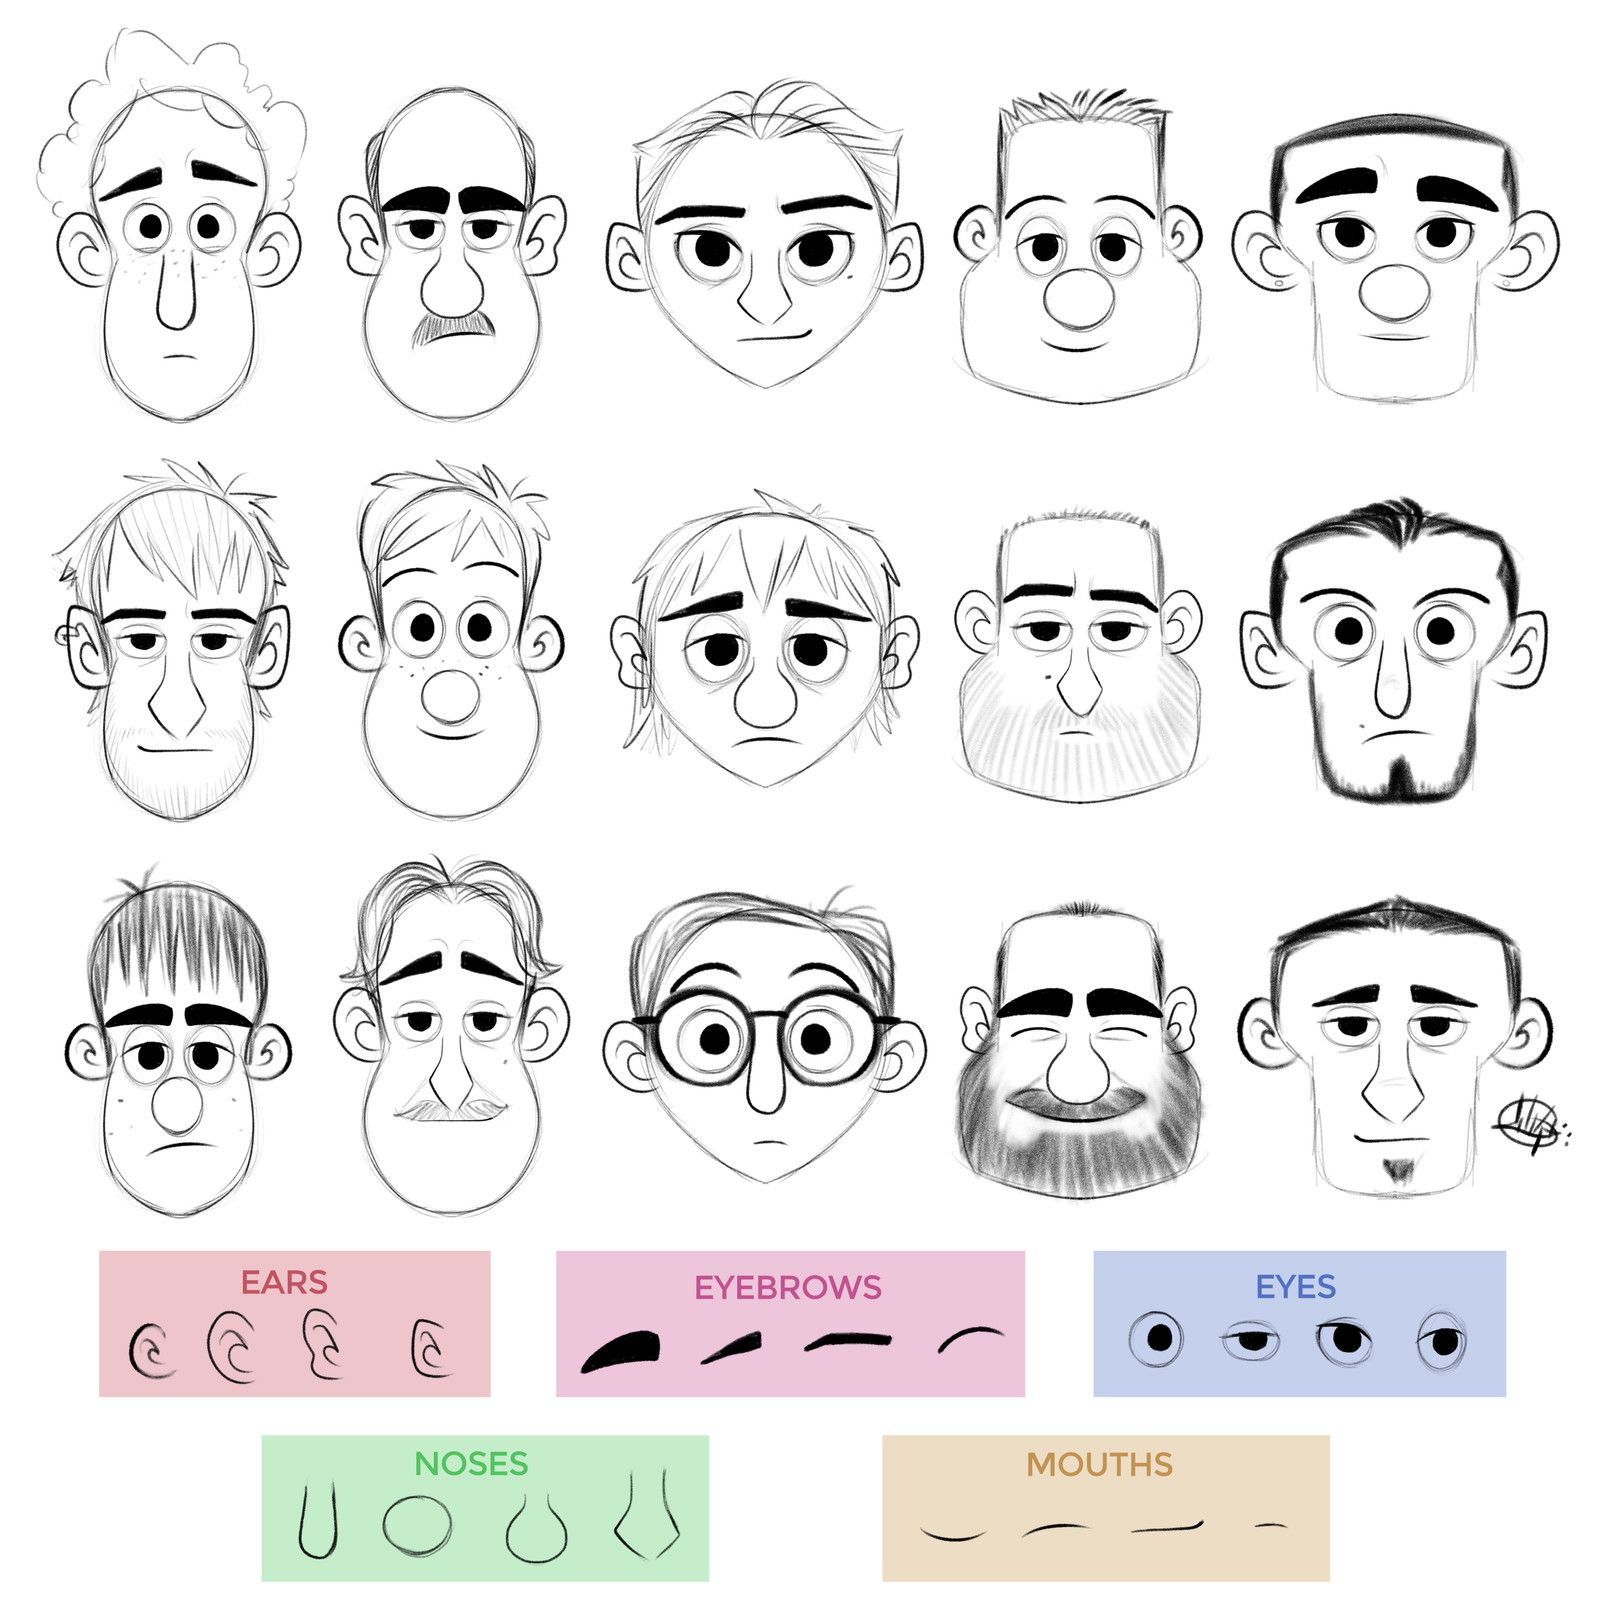 Pin By John Velazquez On Stylized Characters Drawing Cartoon Faces Character Design Animation Drawing Cartoon Characters